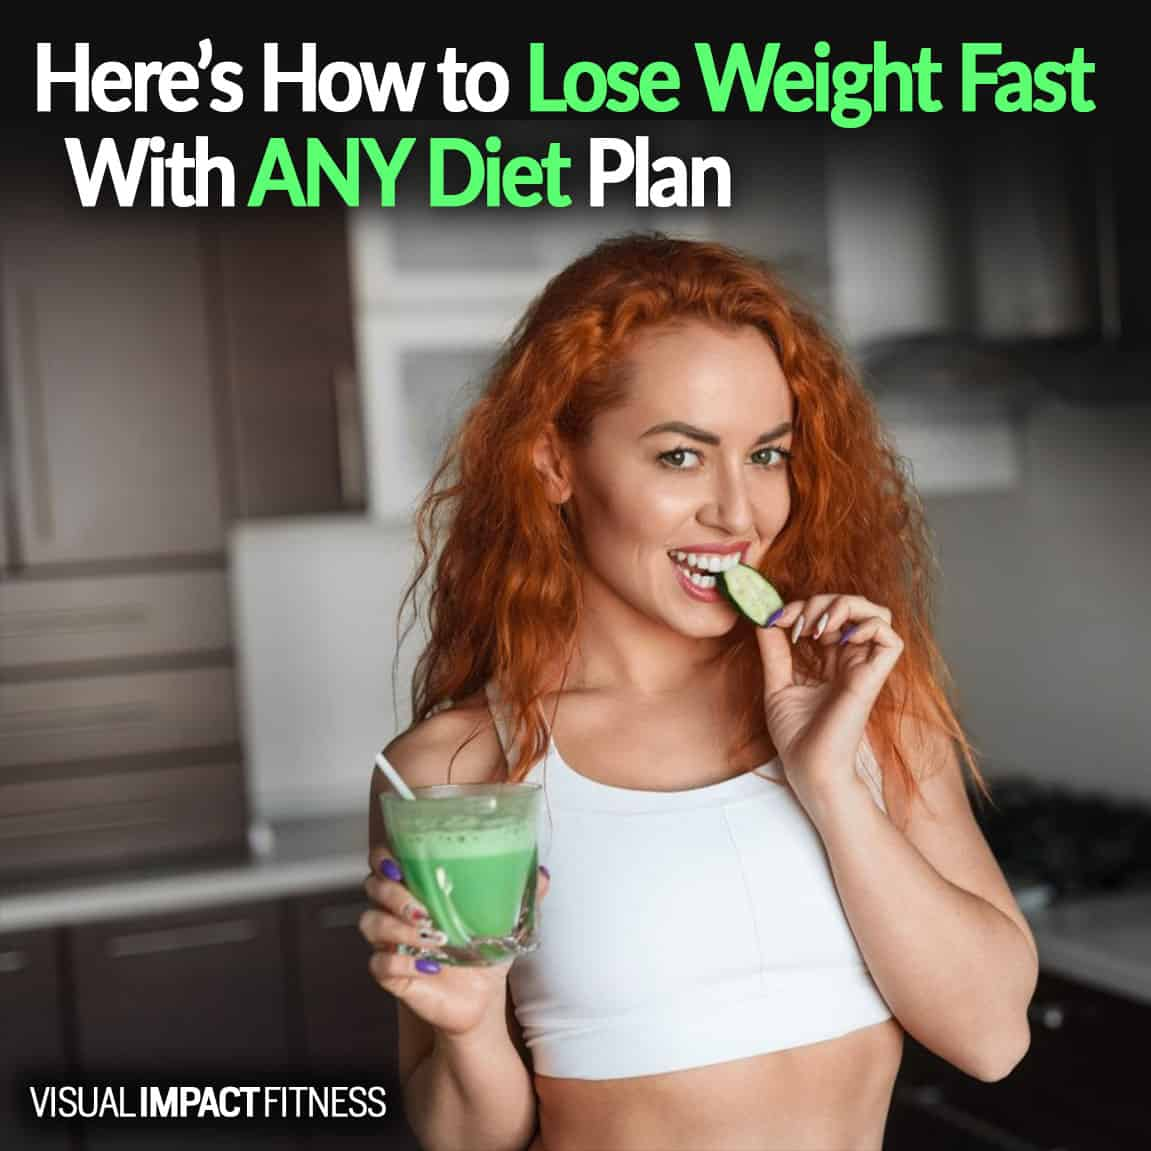 Here's How to Lose Weight Fast With ANY Diet Plan